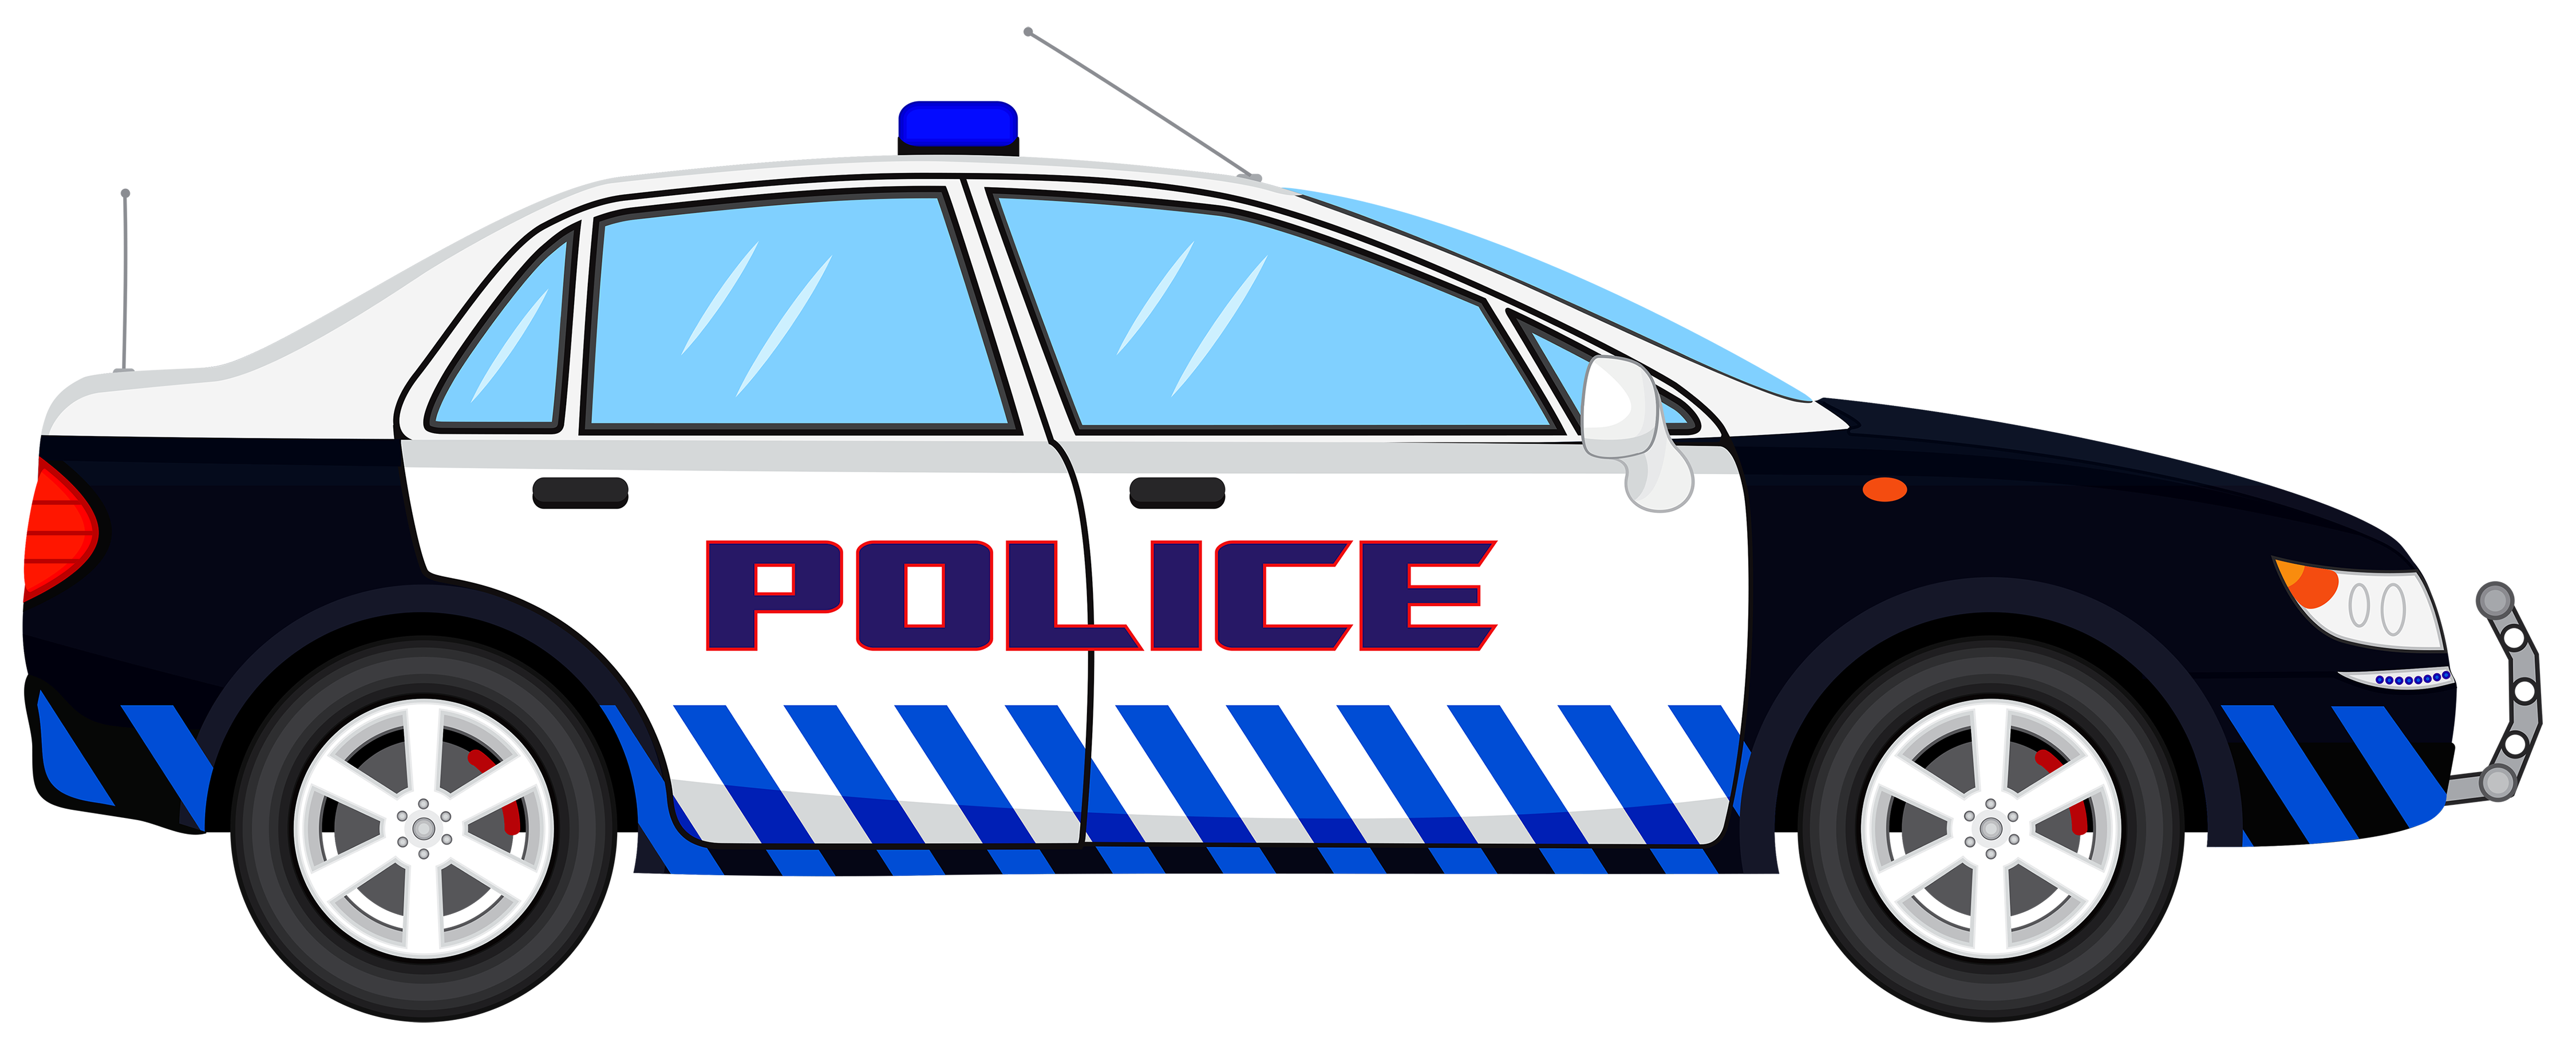 Police car transparent png. Clipart cars vector